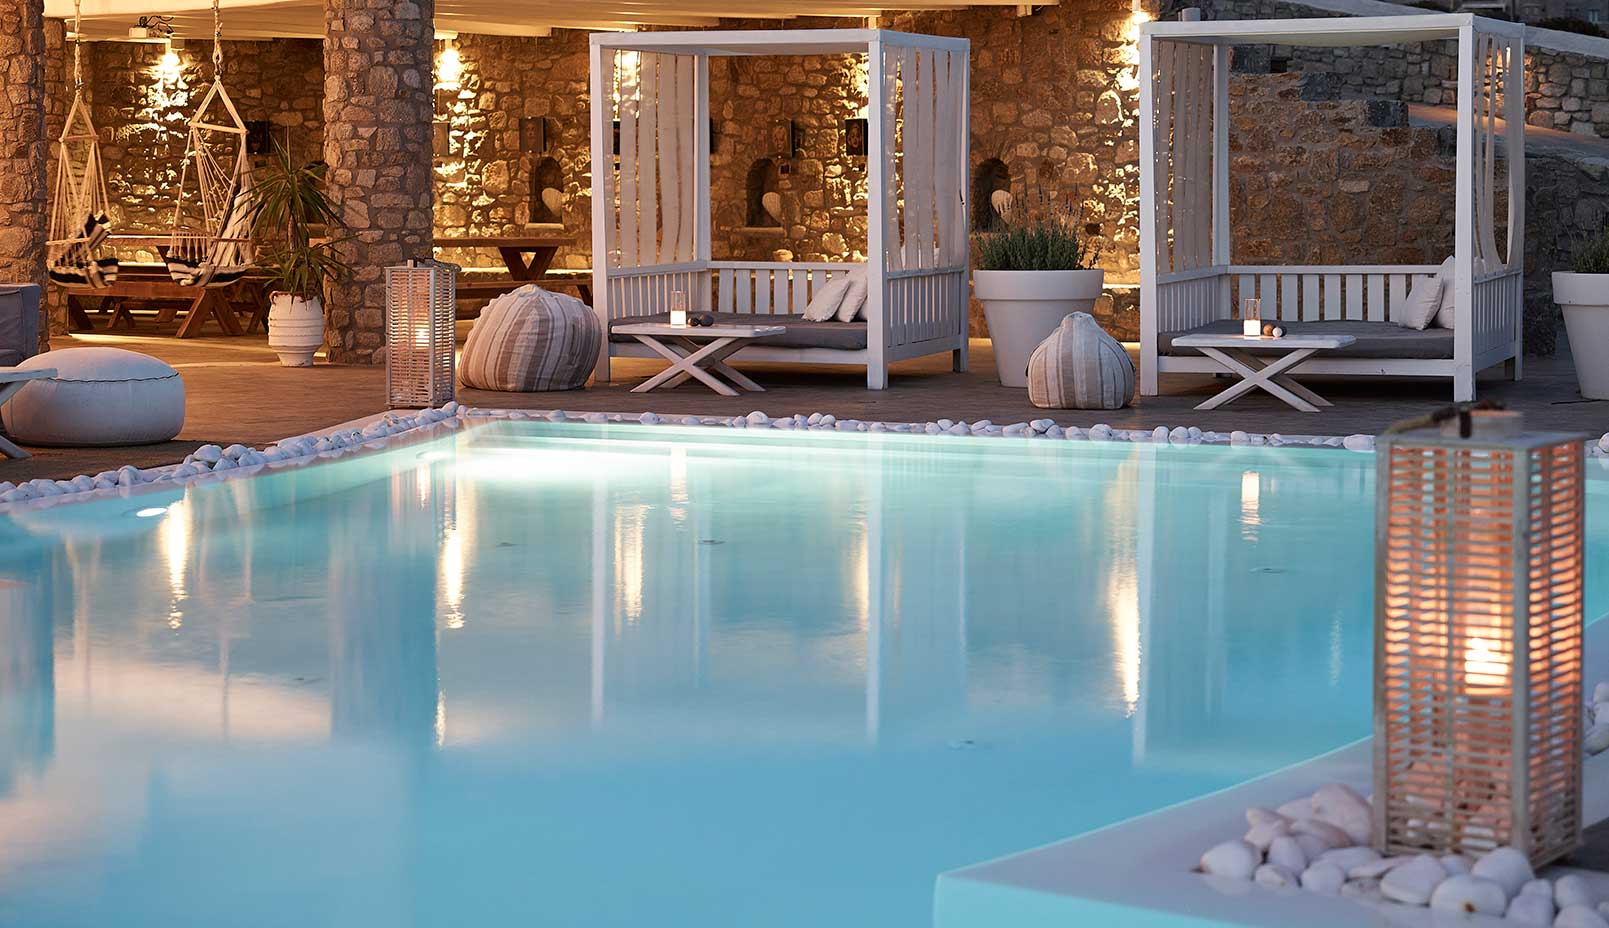 About Rocabella Hotels